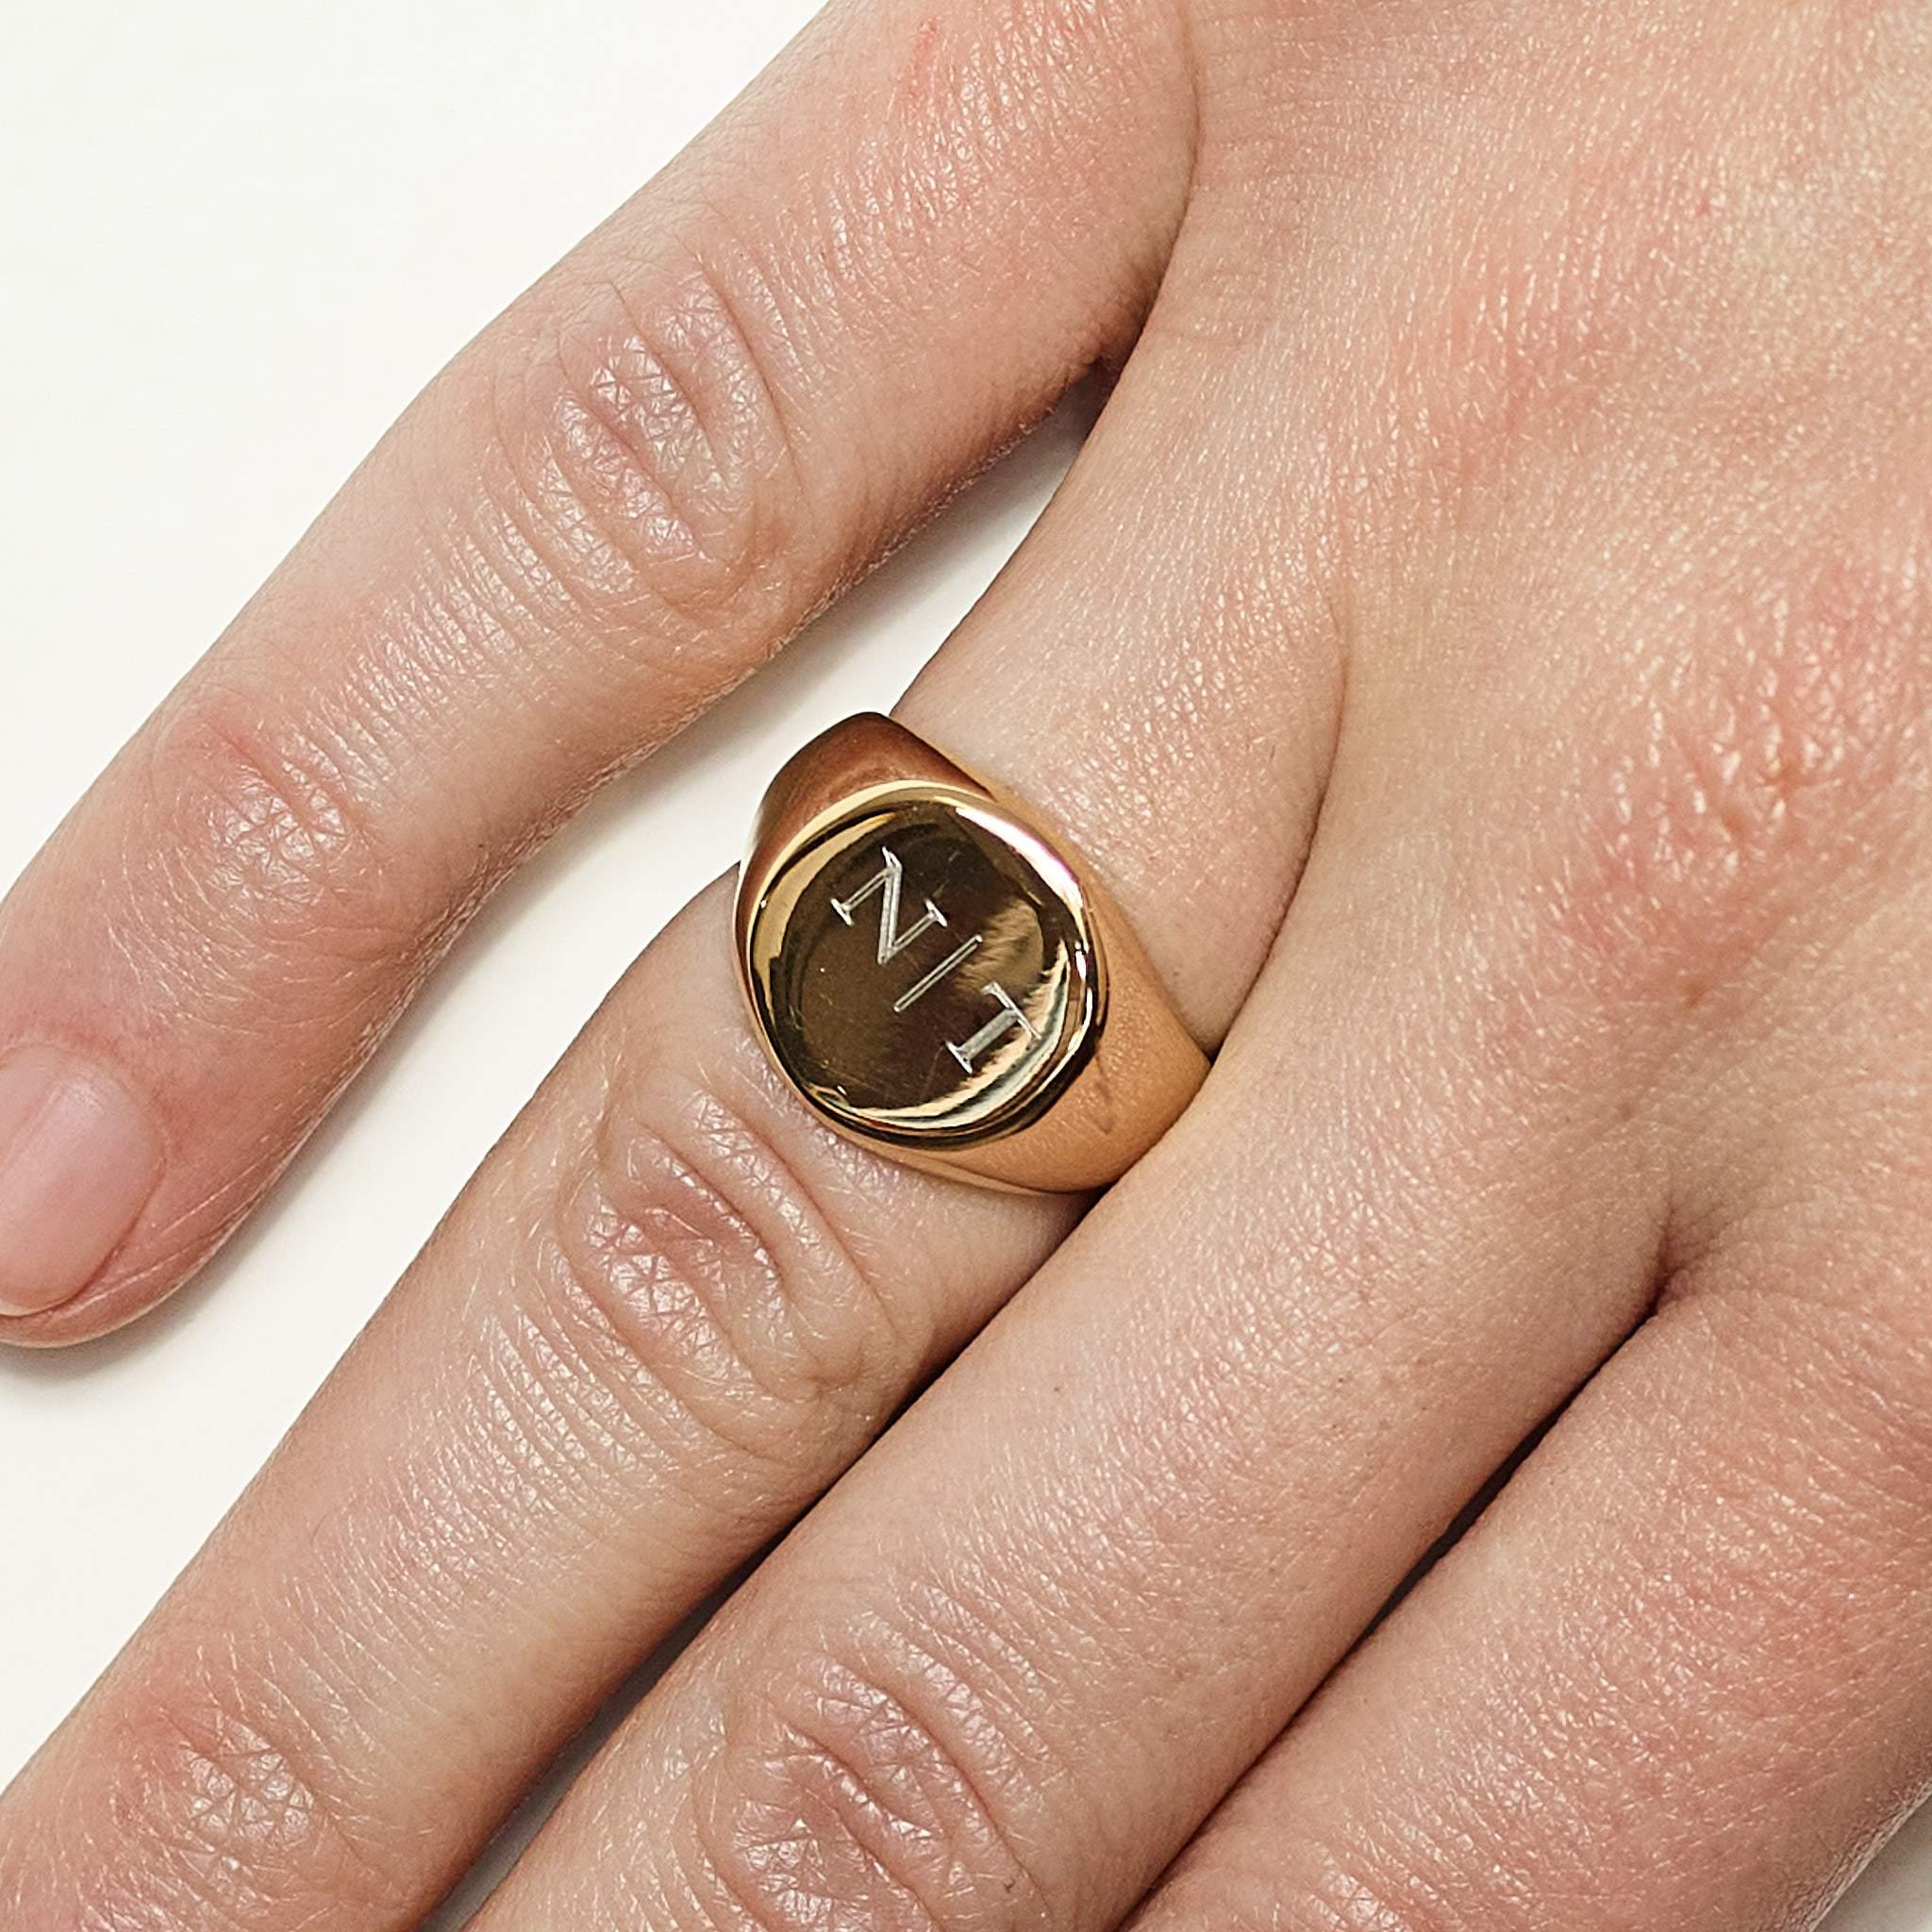 One Initial Signet Ring